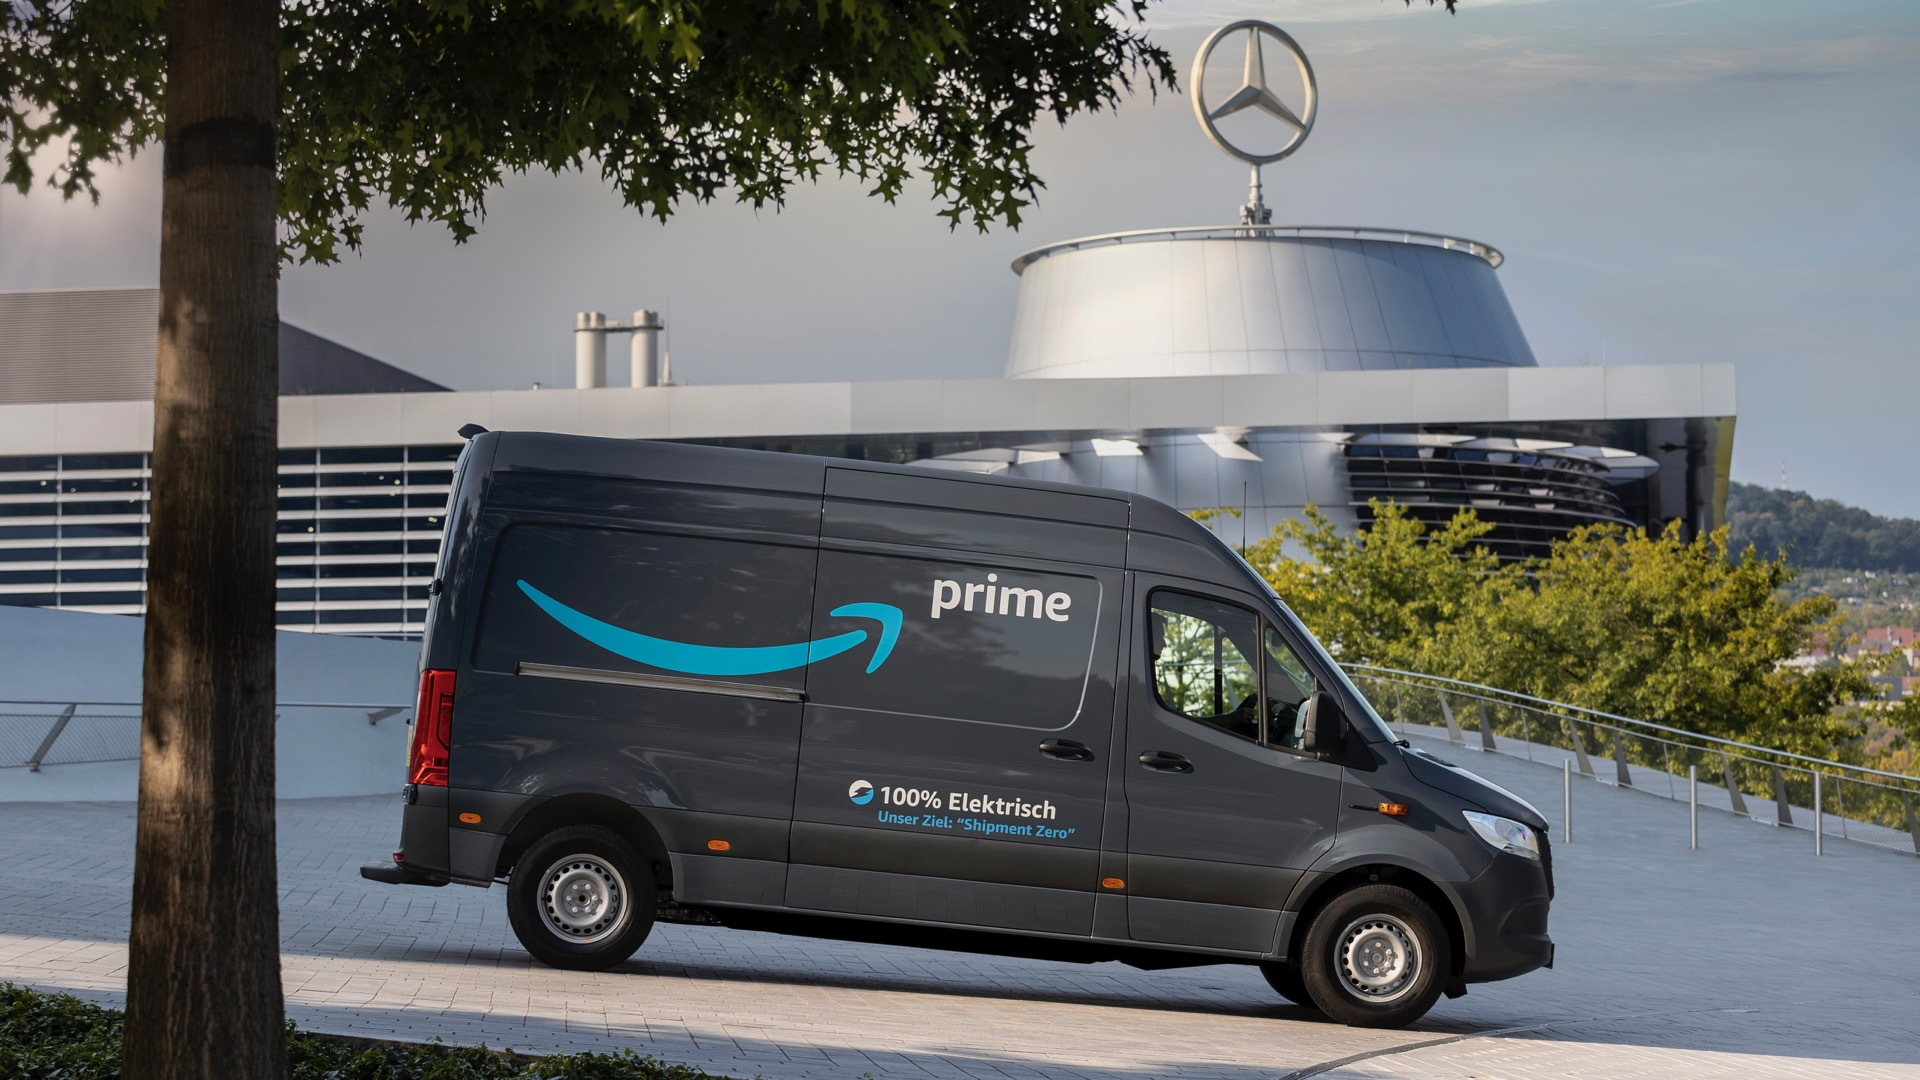 Mercedes-Benz eSprinter Amazon delivery van